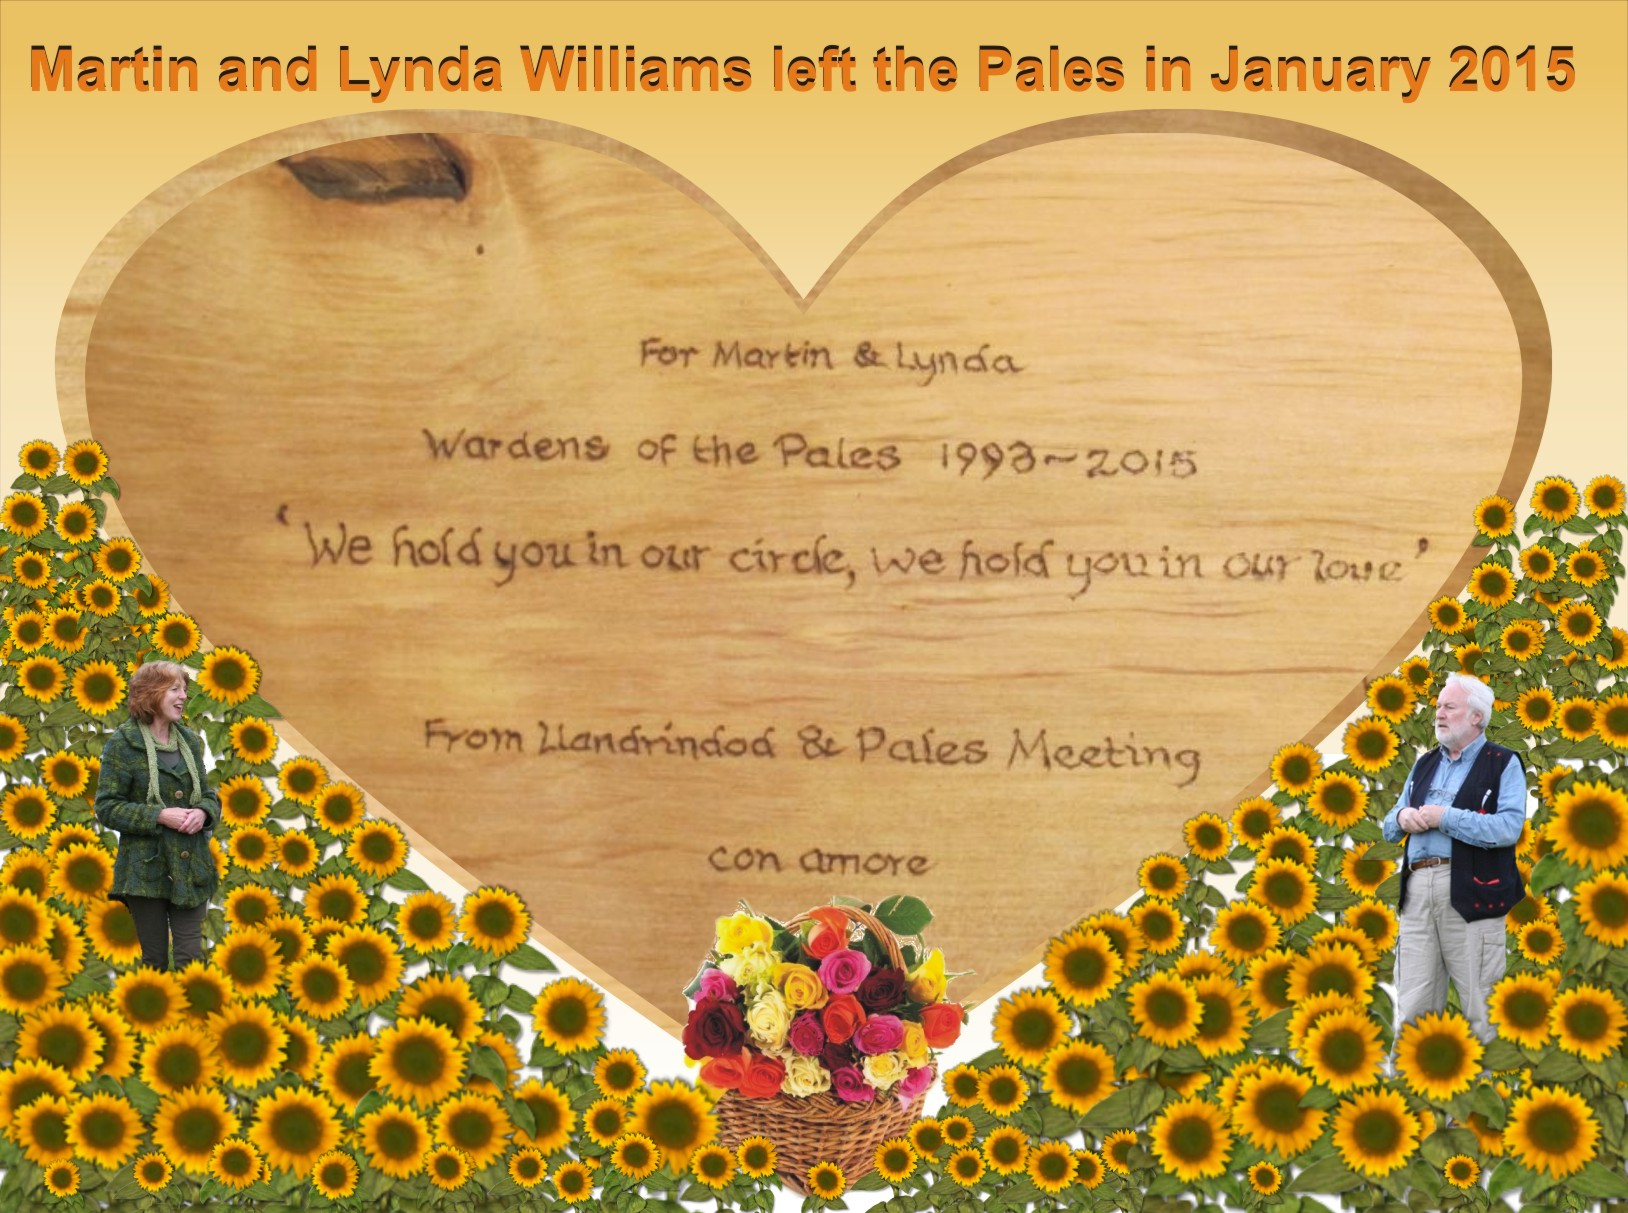 Pales Wardens, Lynda and Martin Williams, retired and moved away in Jan 2015